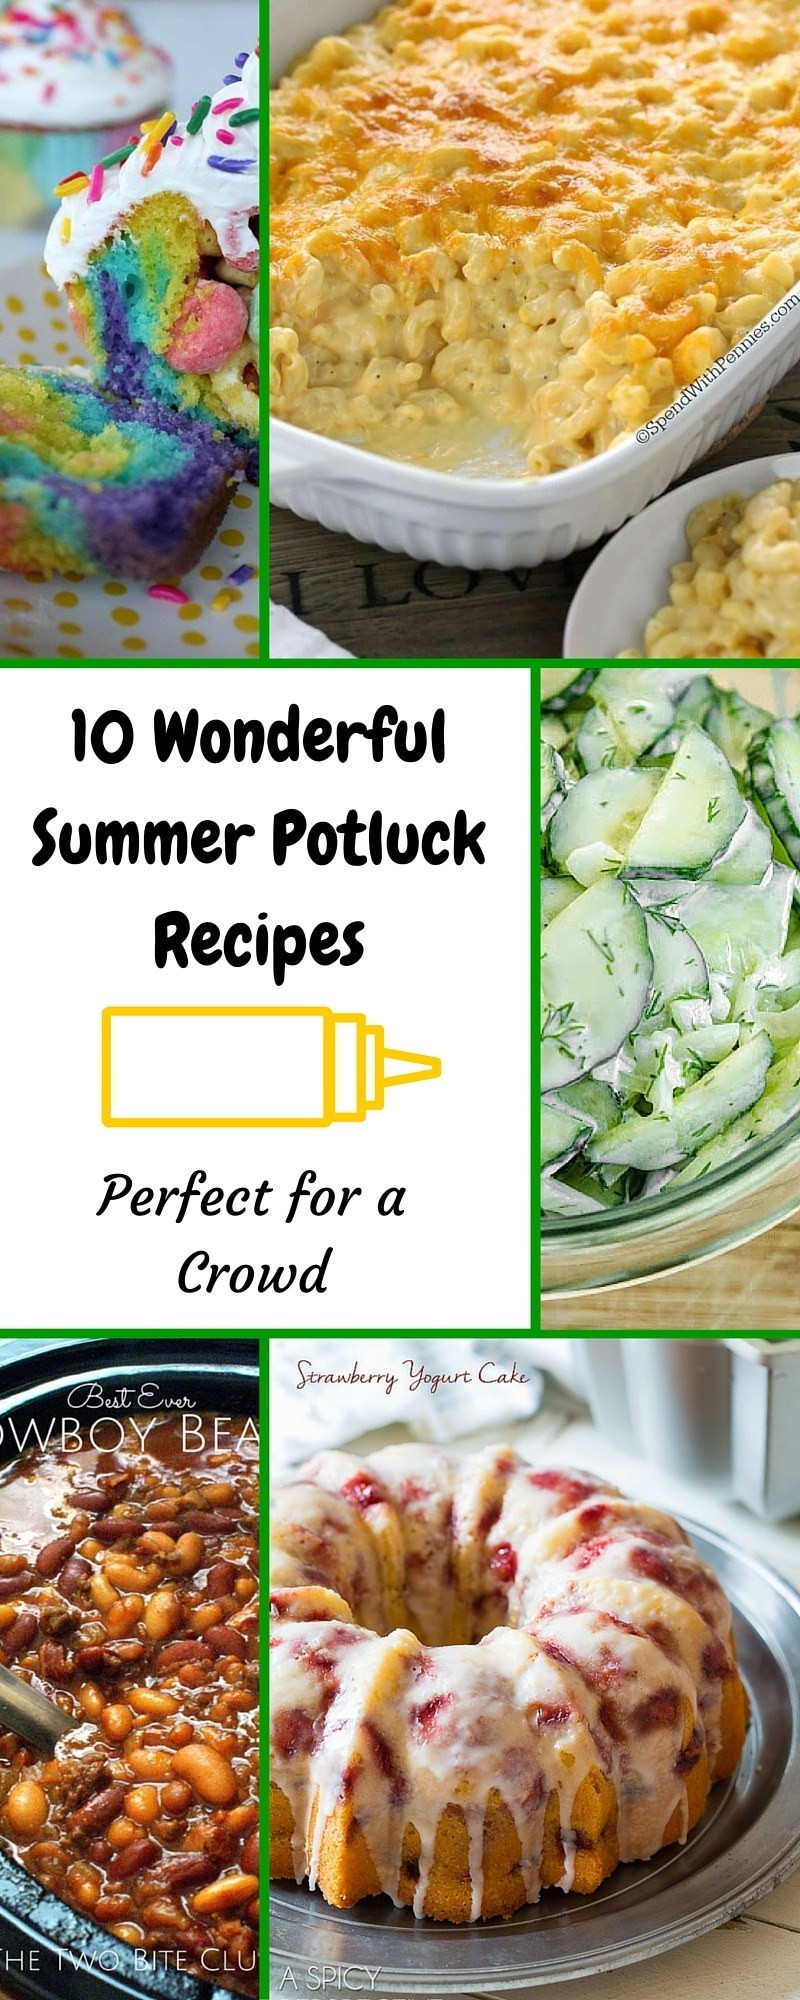 Summer Side Dishes For A Crowd  10 Wonderful Summer Potluck Recipes Perfect for a Crowd